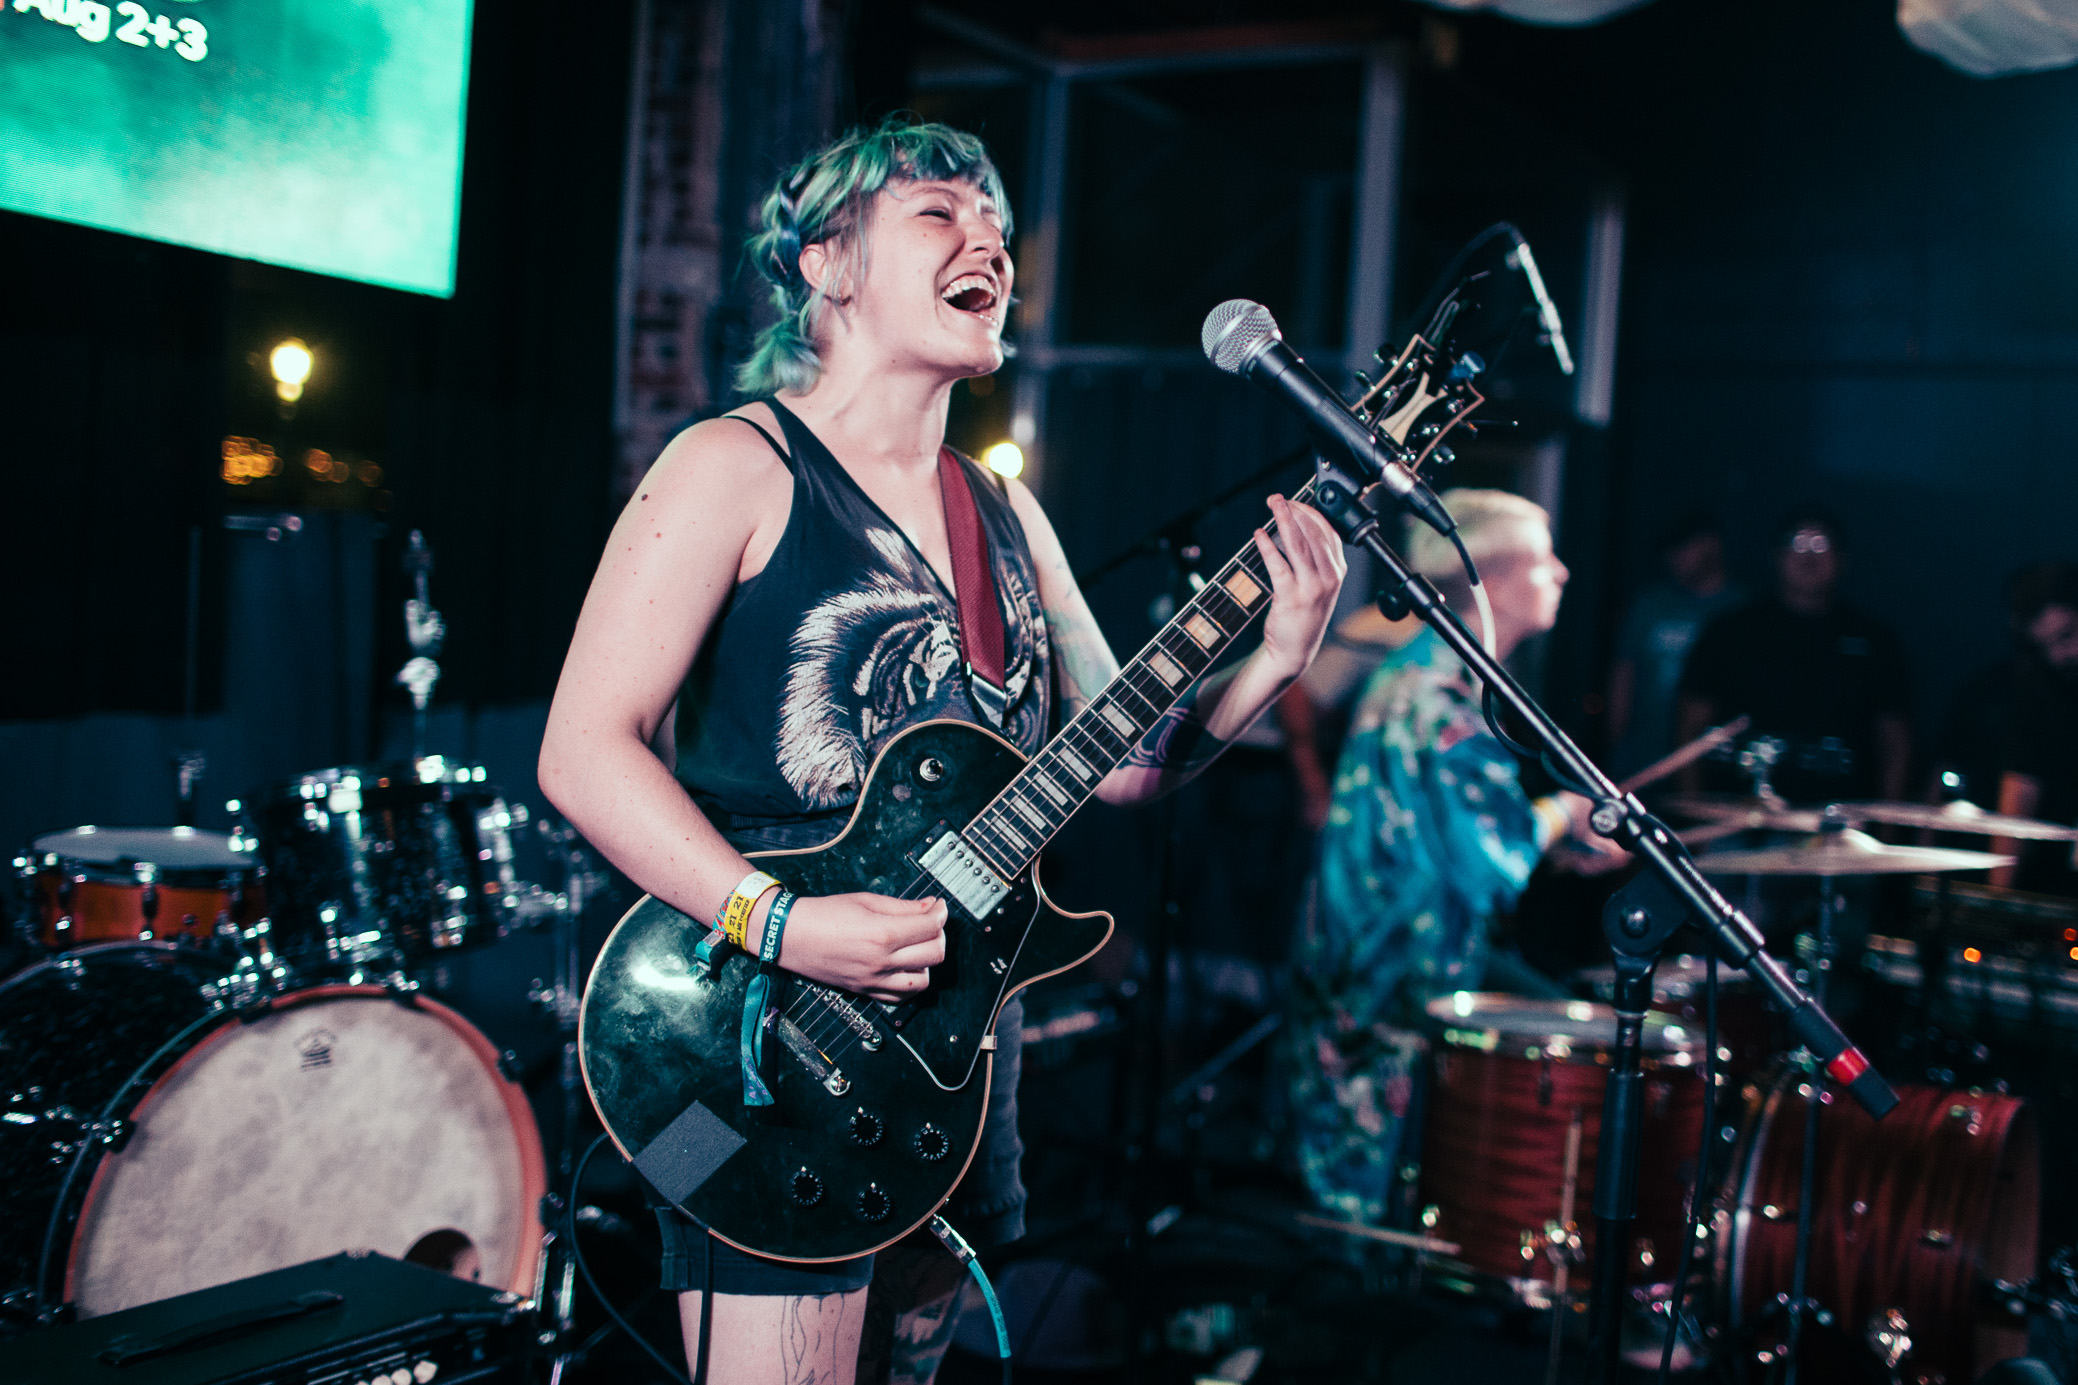 GRLwood performs in concert at the 2019 Secret Stages Music Discovery Festival in Birmingham, Alabama on August 3rd, 2019. (Photo by David A. Smith / DSmithScenes)